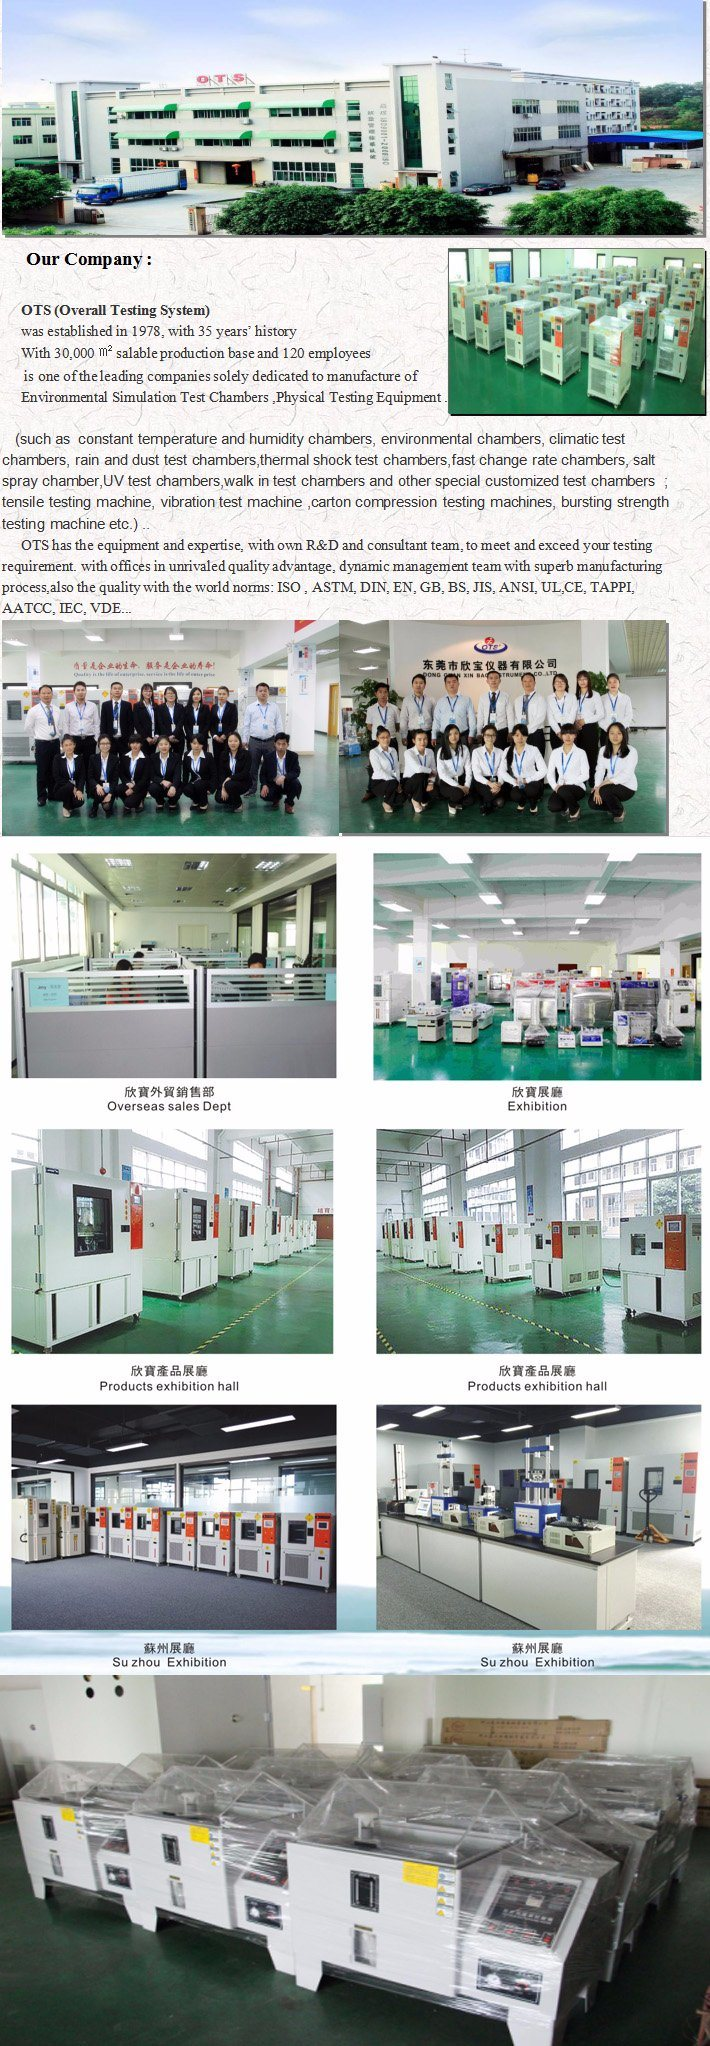 Low Air Pressure Simulation Climatic Chamber Altitude Testing Equipment